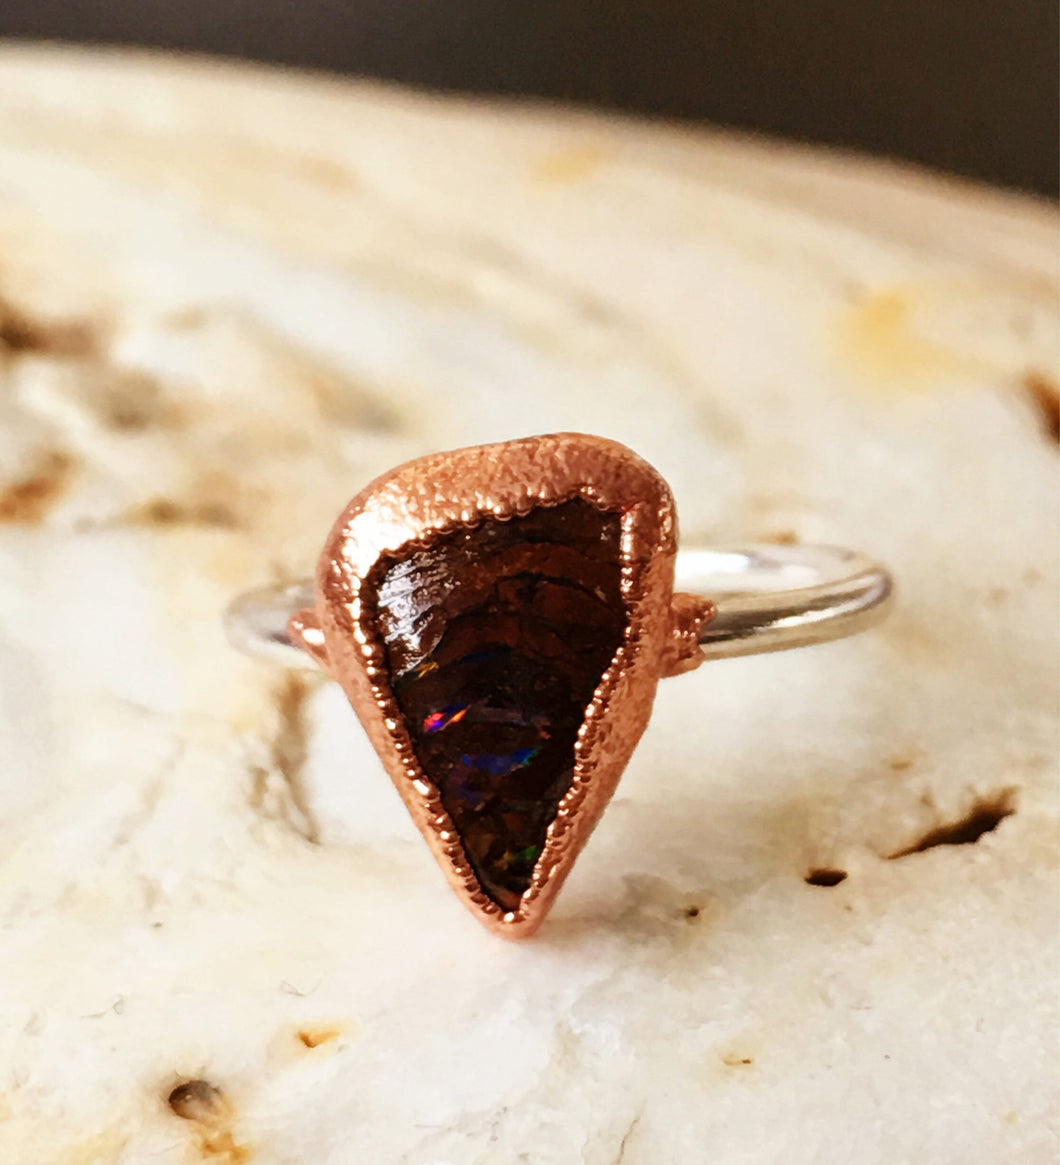 Natural Boulder Opal Copper & Silver Ring, size I, US ring size 4 1/4.